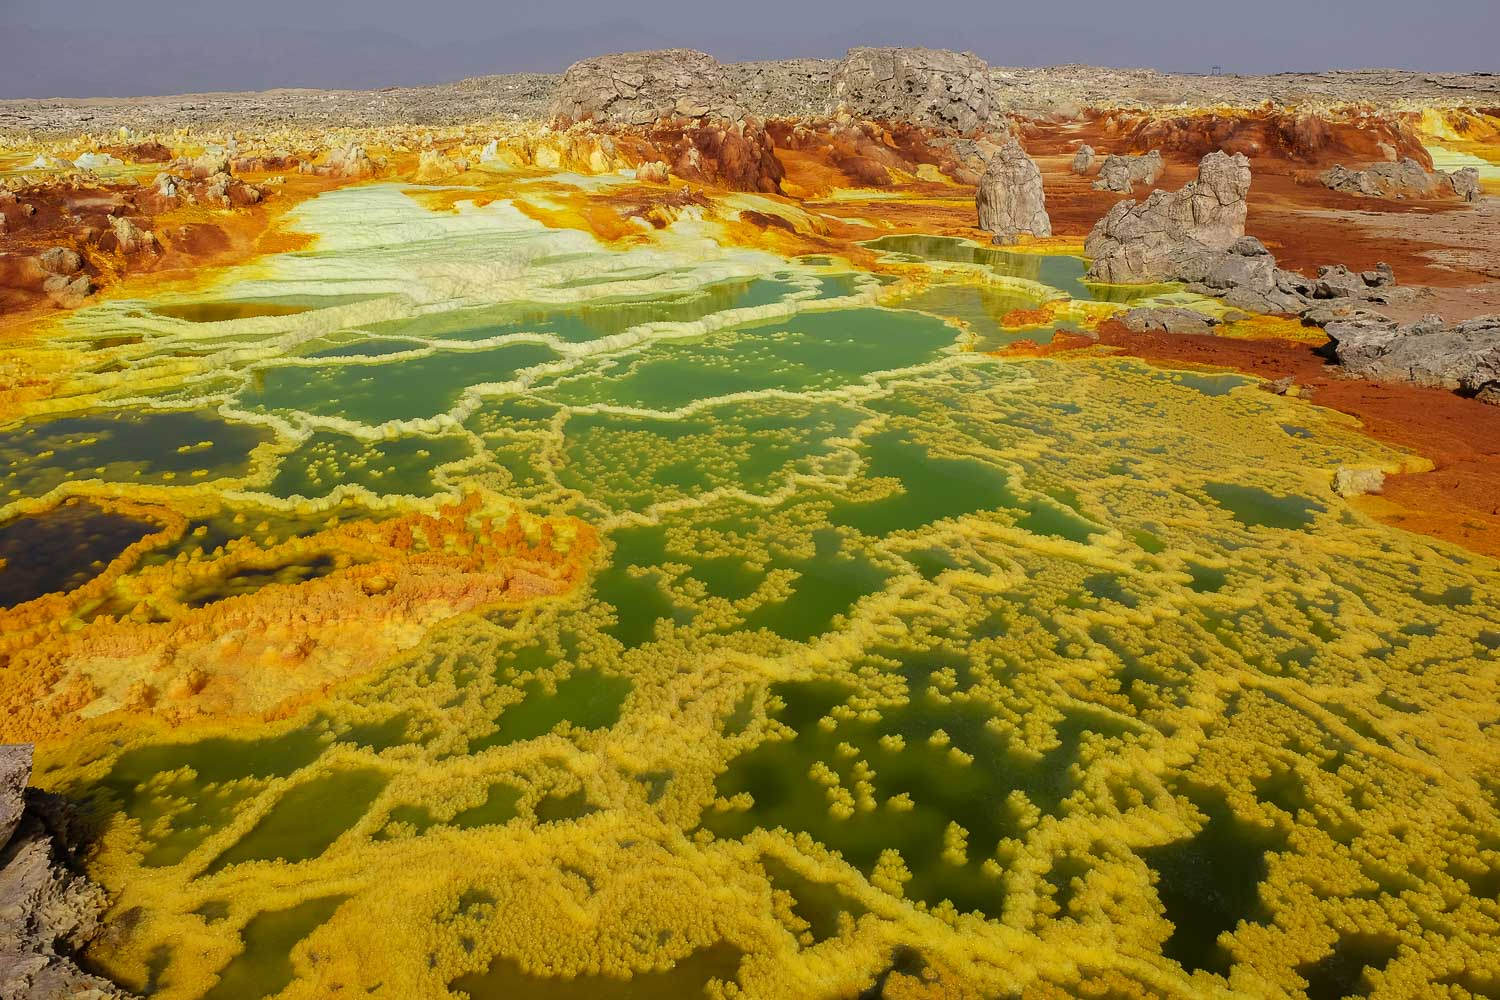 2017-04-01_10-15-59(Lac Karum, Dallol)